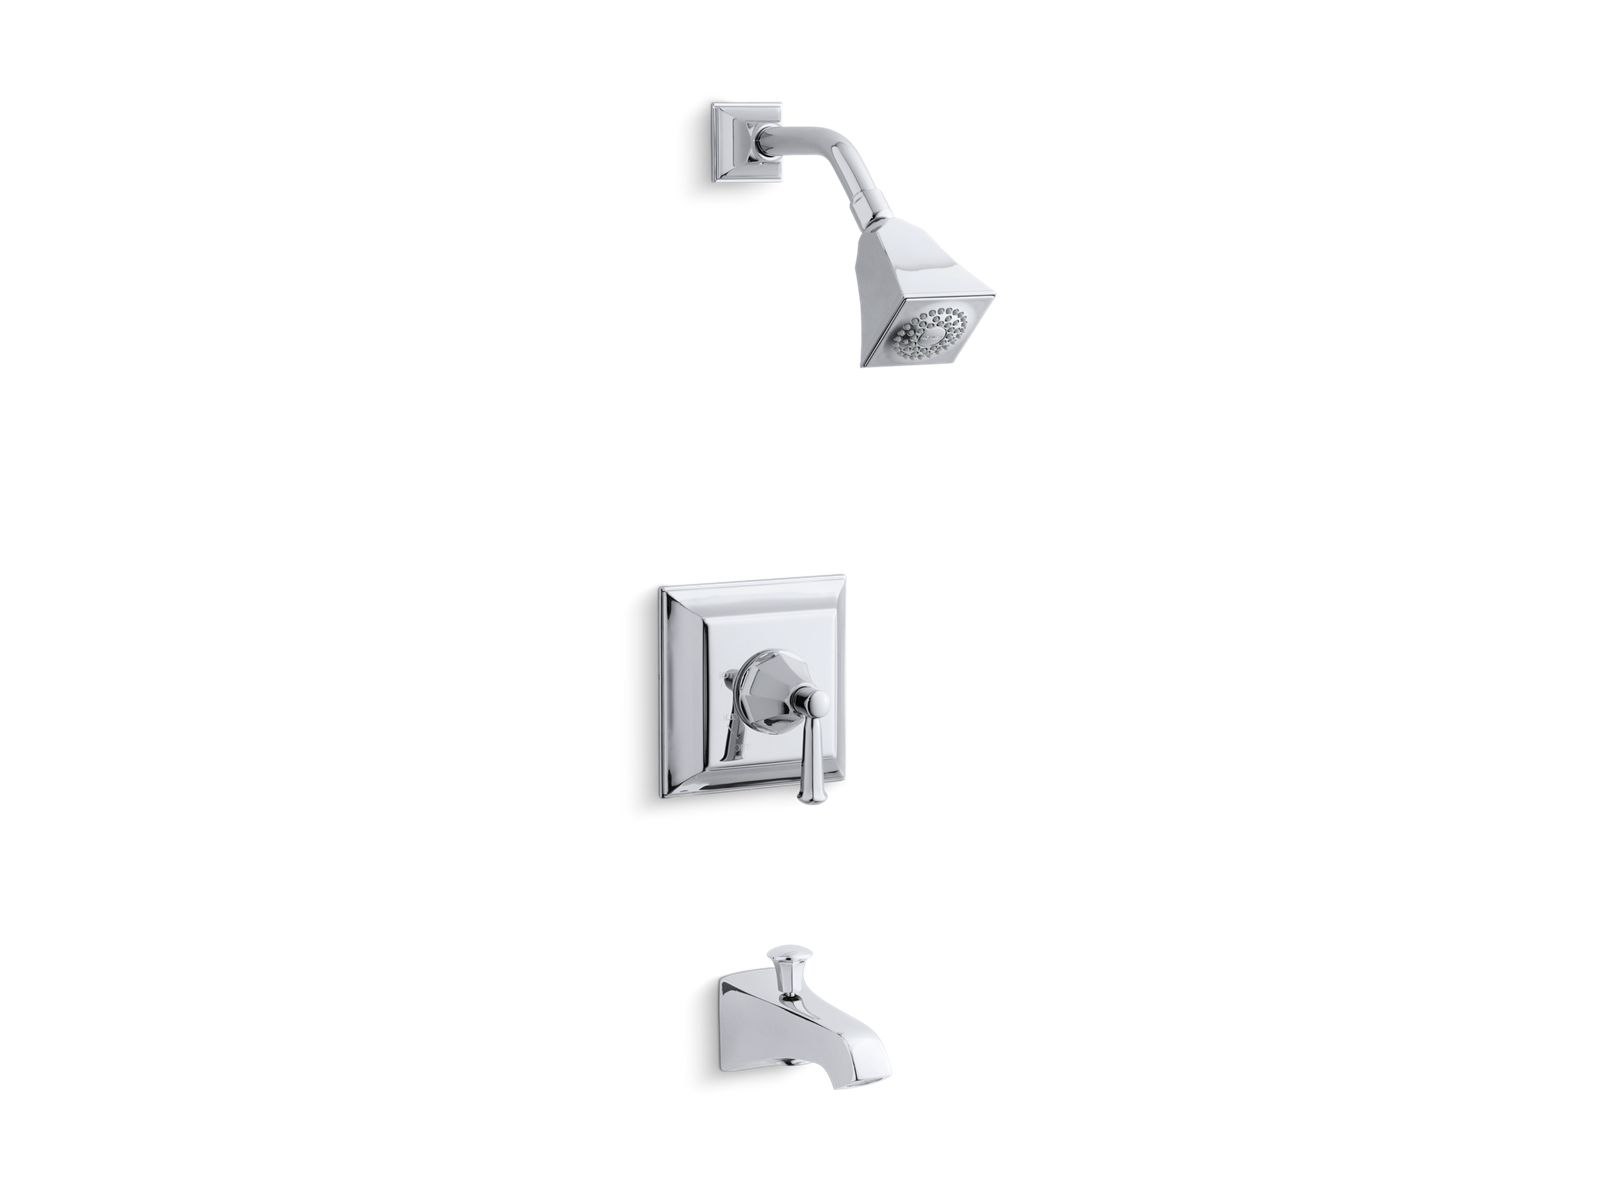 kts4614s memoirs stately ritetemp bath and shower valve trim with lever handle spout and 25 gpm showerhead kohler